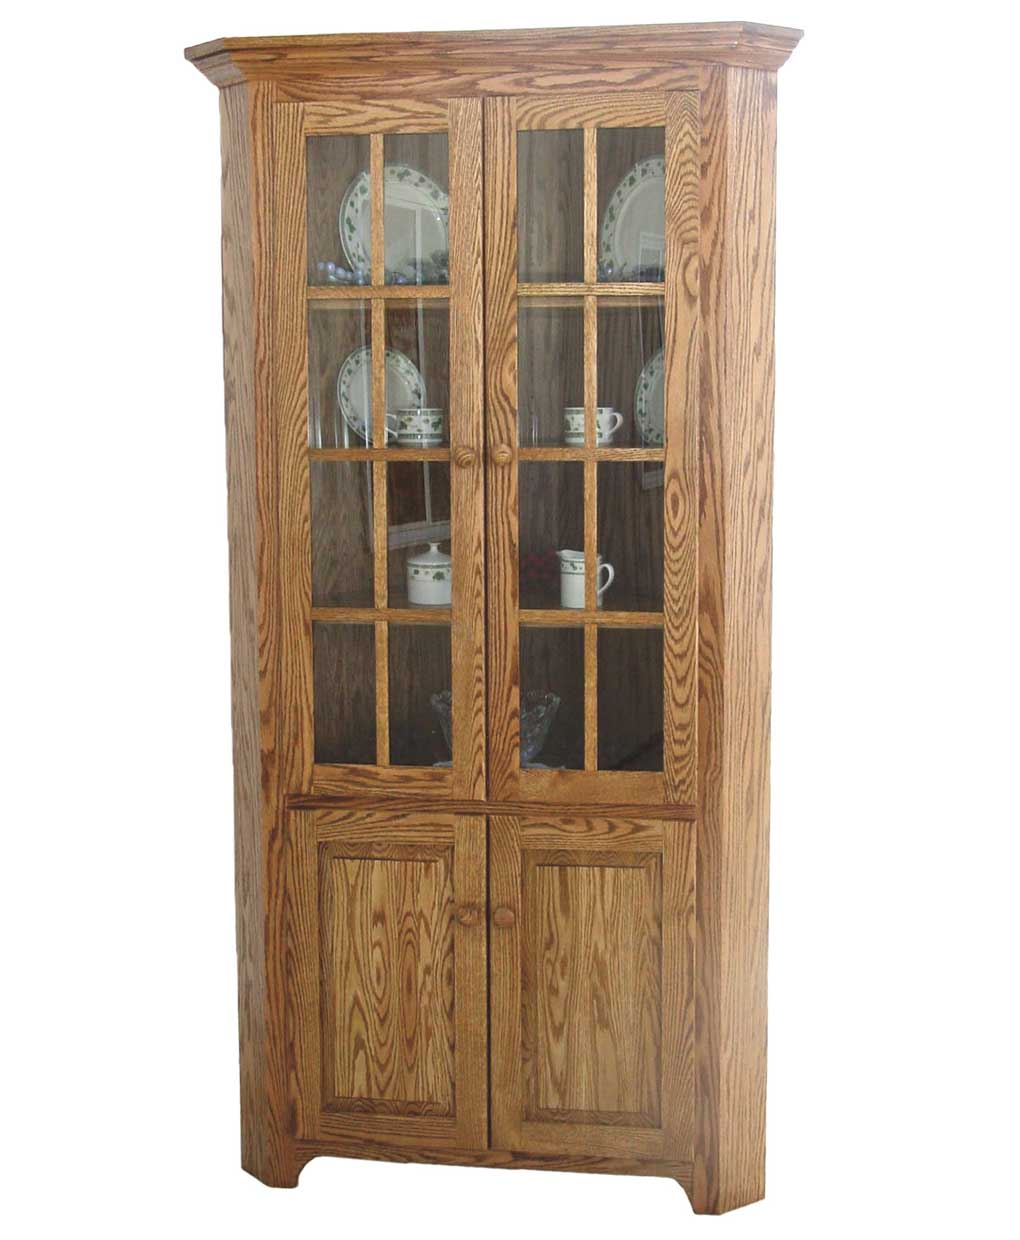 Shaker Amish Corner Cabinet  sc 1 st  Amish Direct Furniture & Shaker Corner Cabinet - Amish Direct Furniture